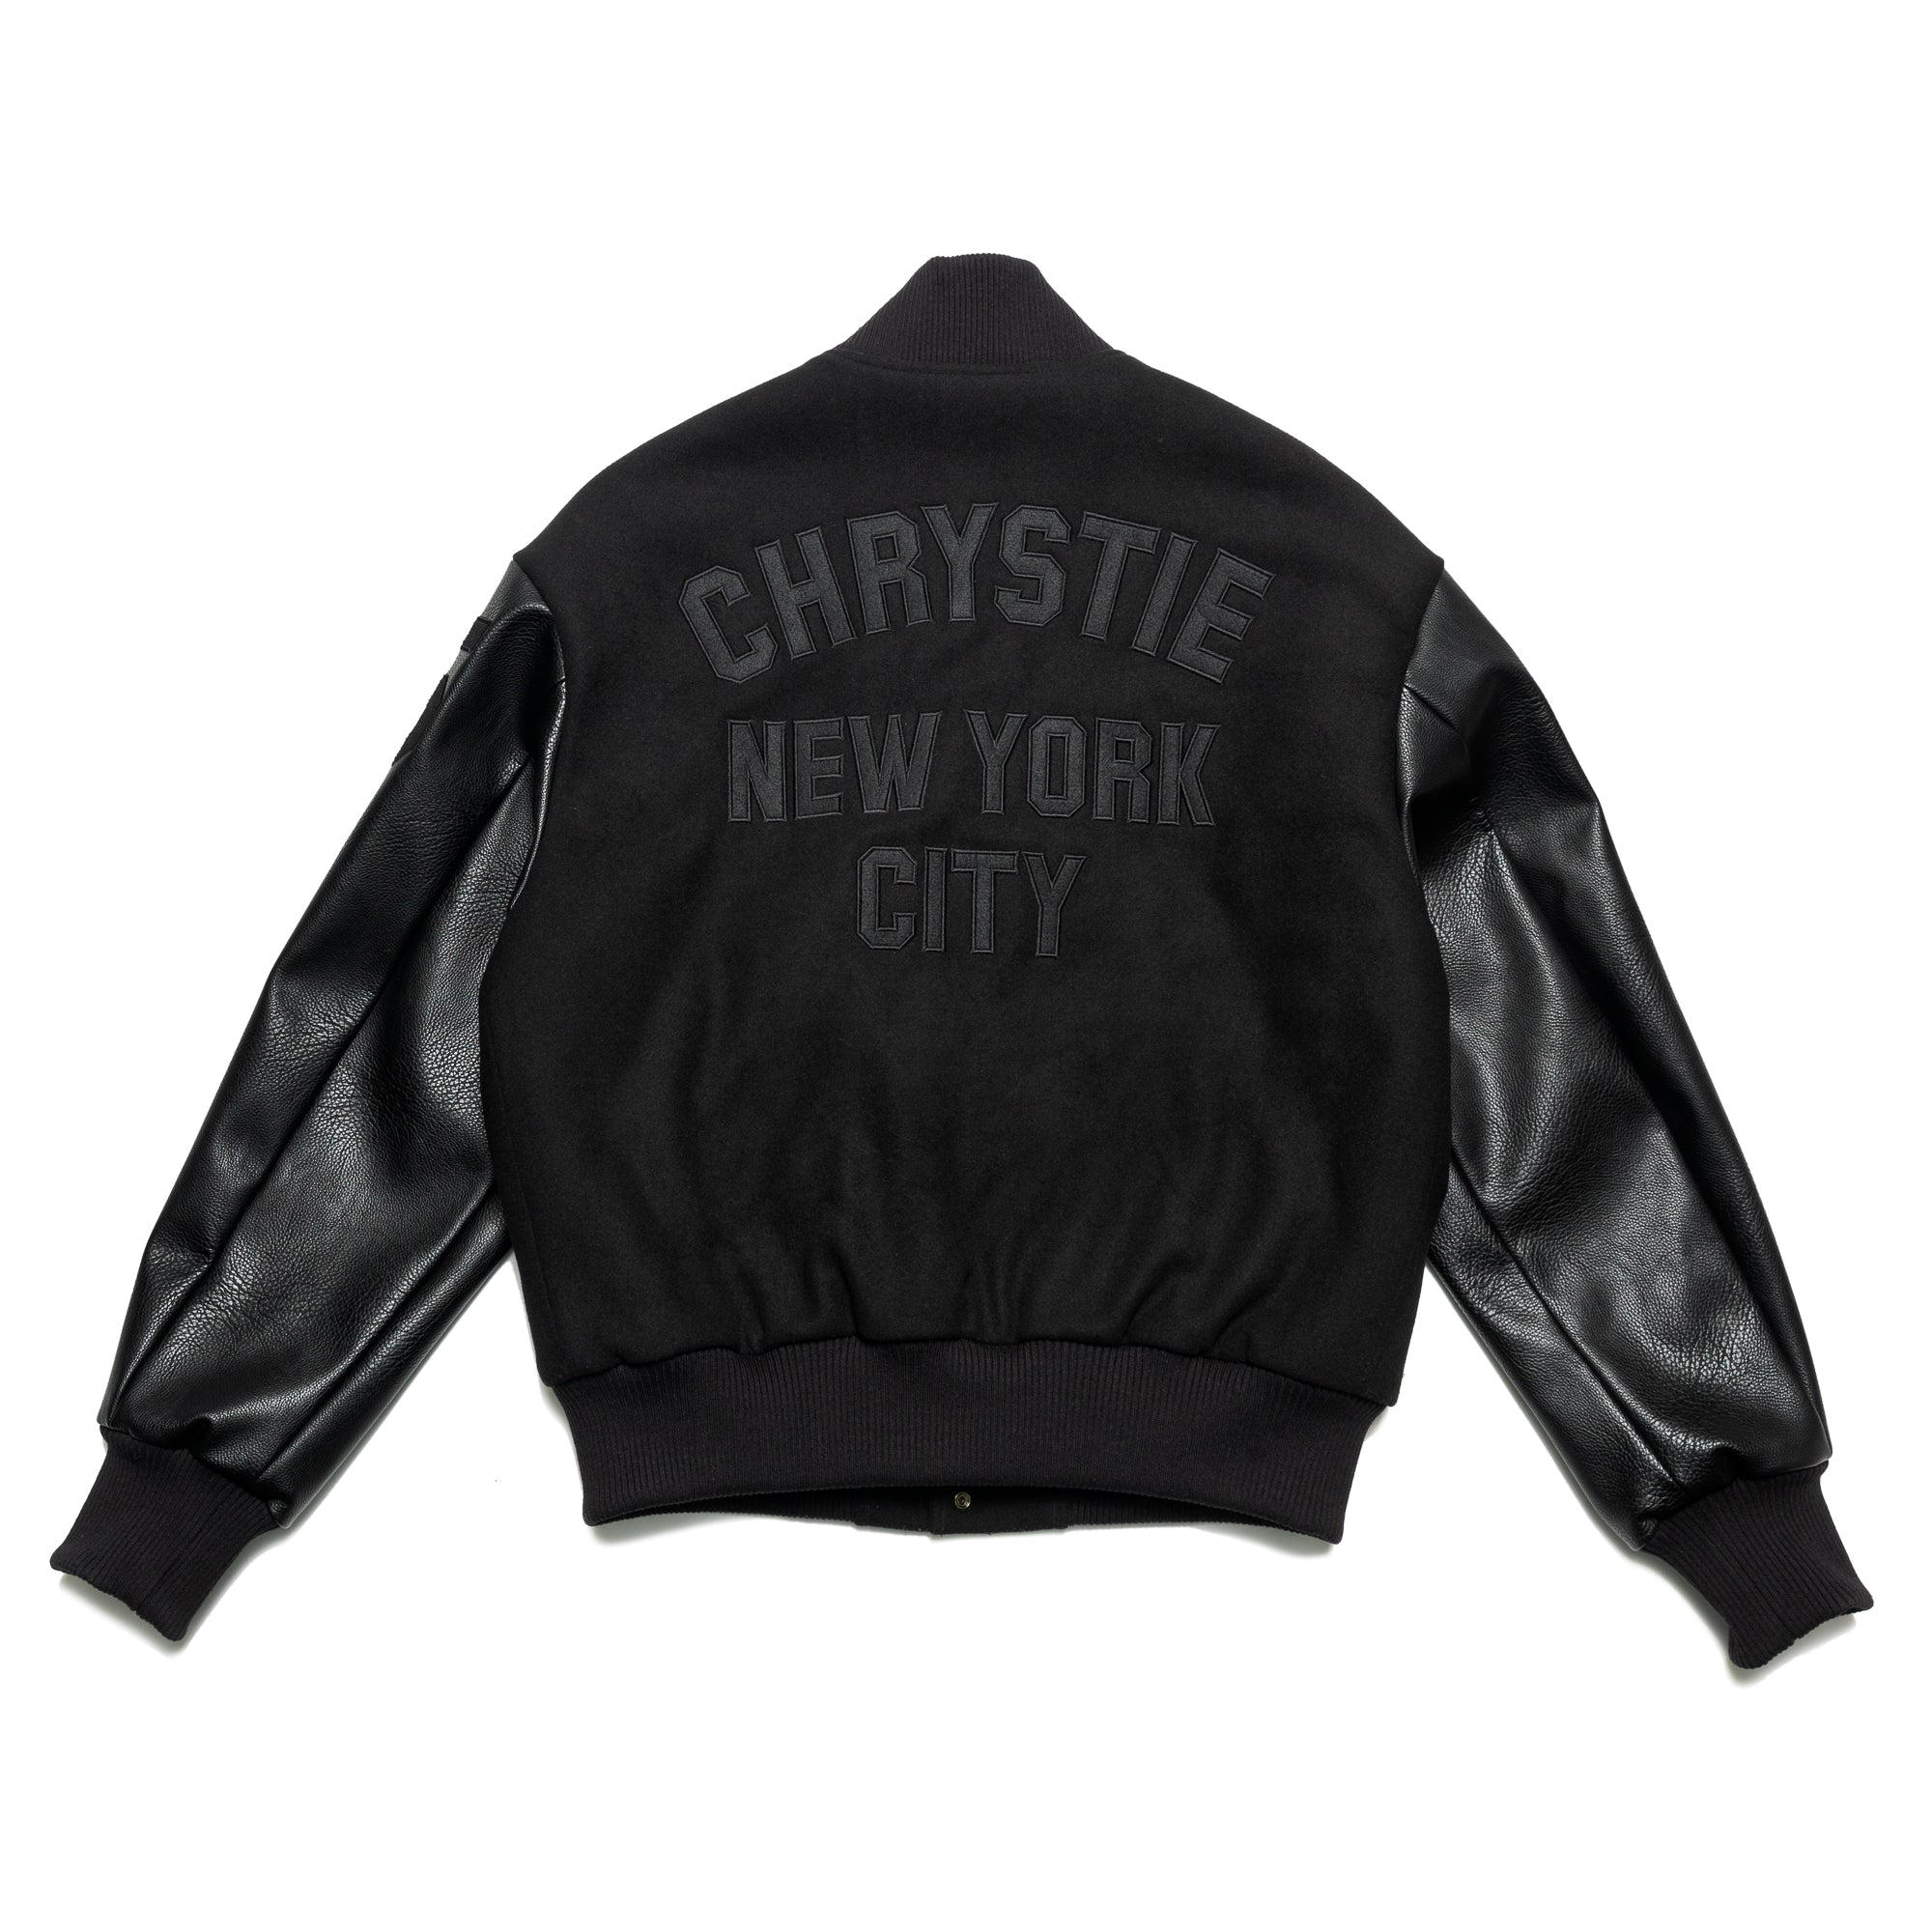 Load image into Gallery viewer, Team Chrystie Varsity Jacket